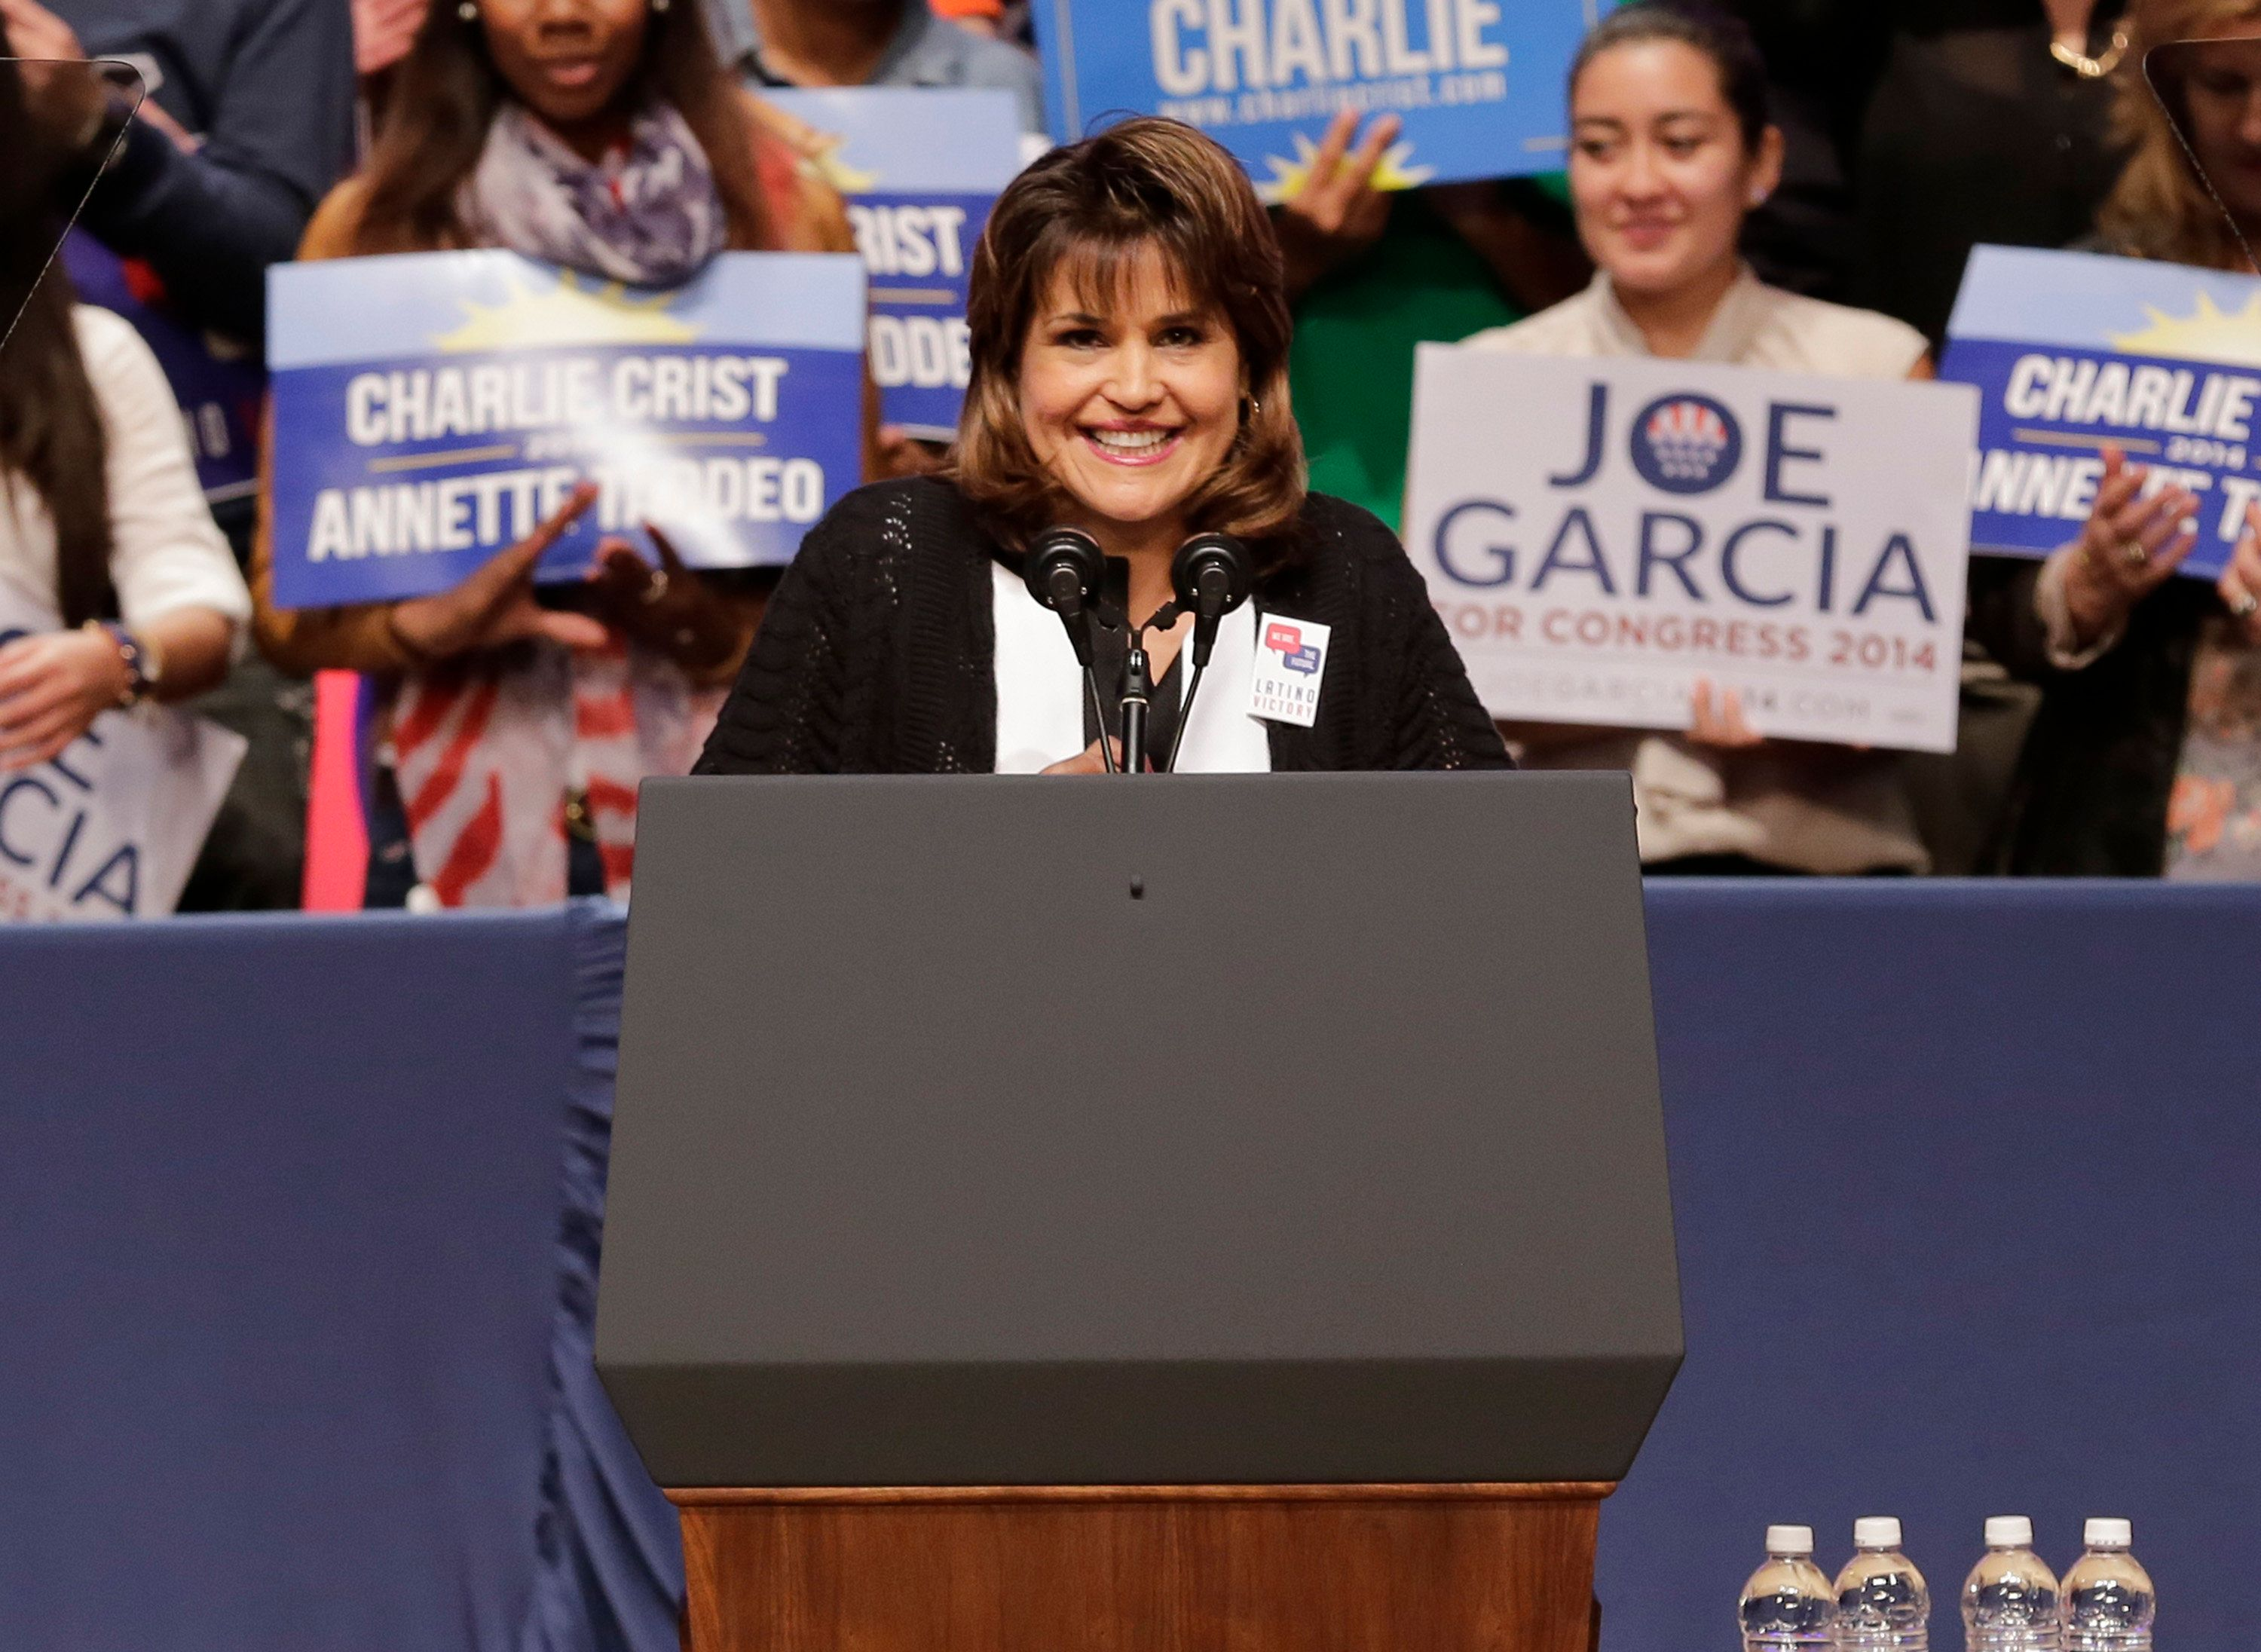 Democrat Annette Taddeo won a special election to represent Florida's 40th state Senate district.